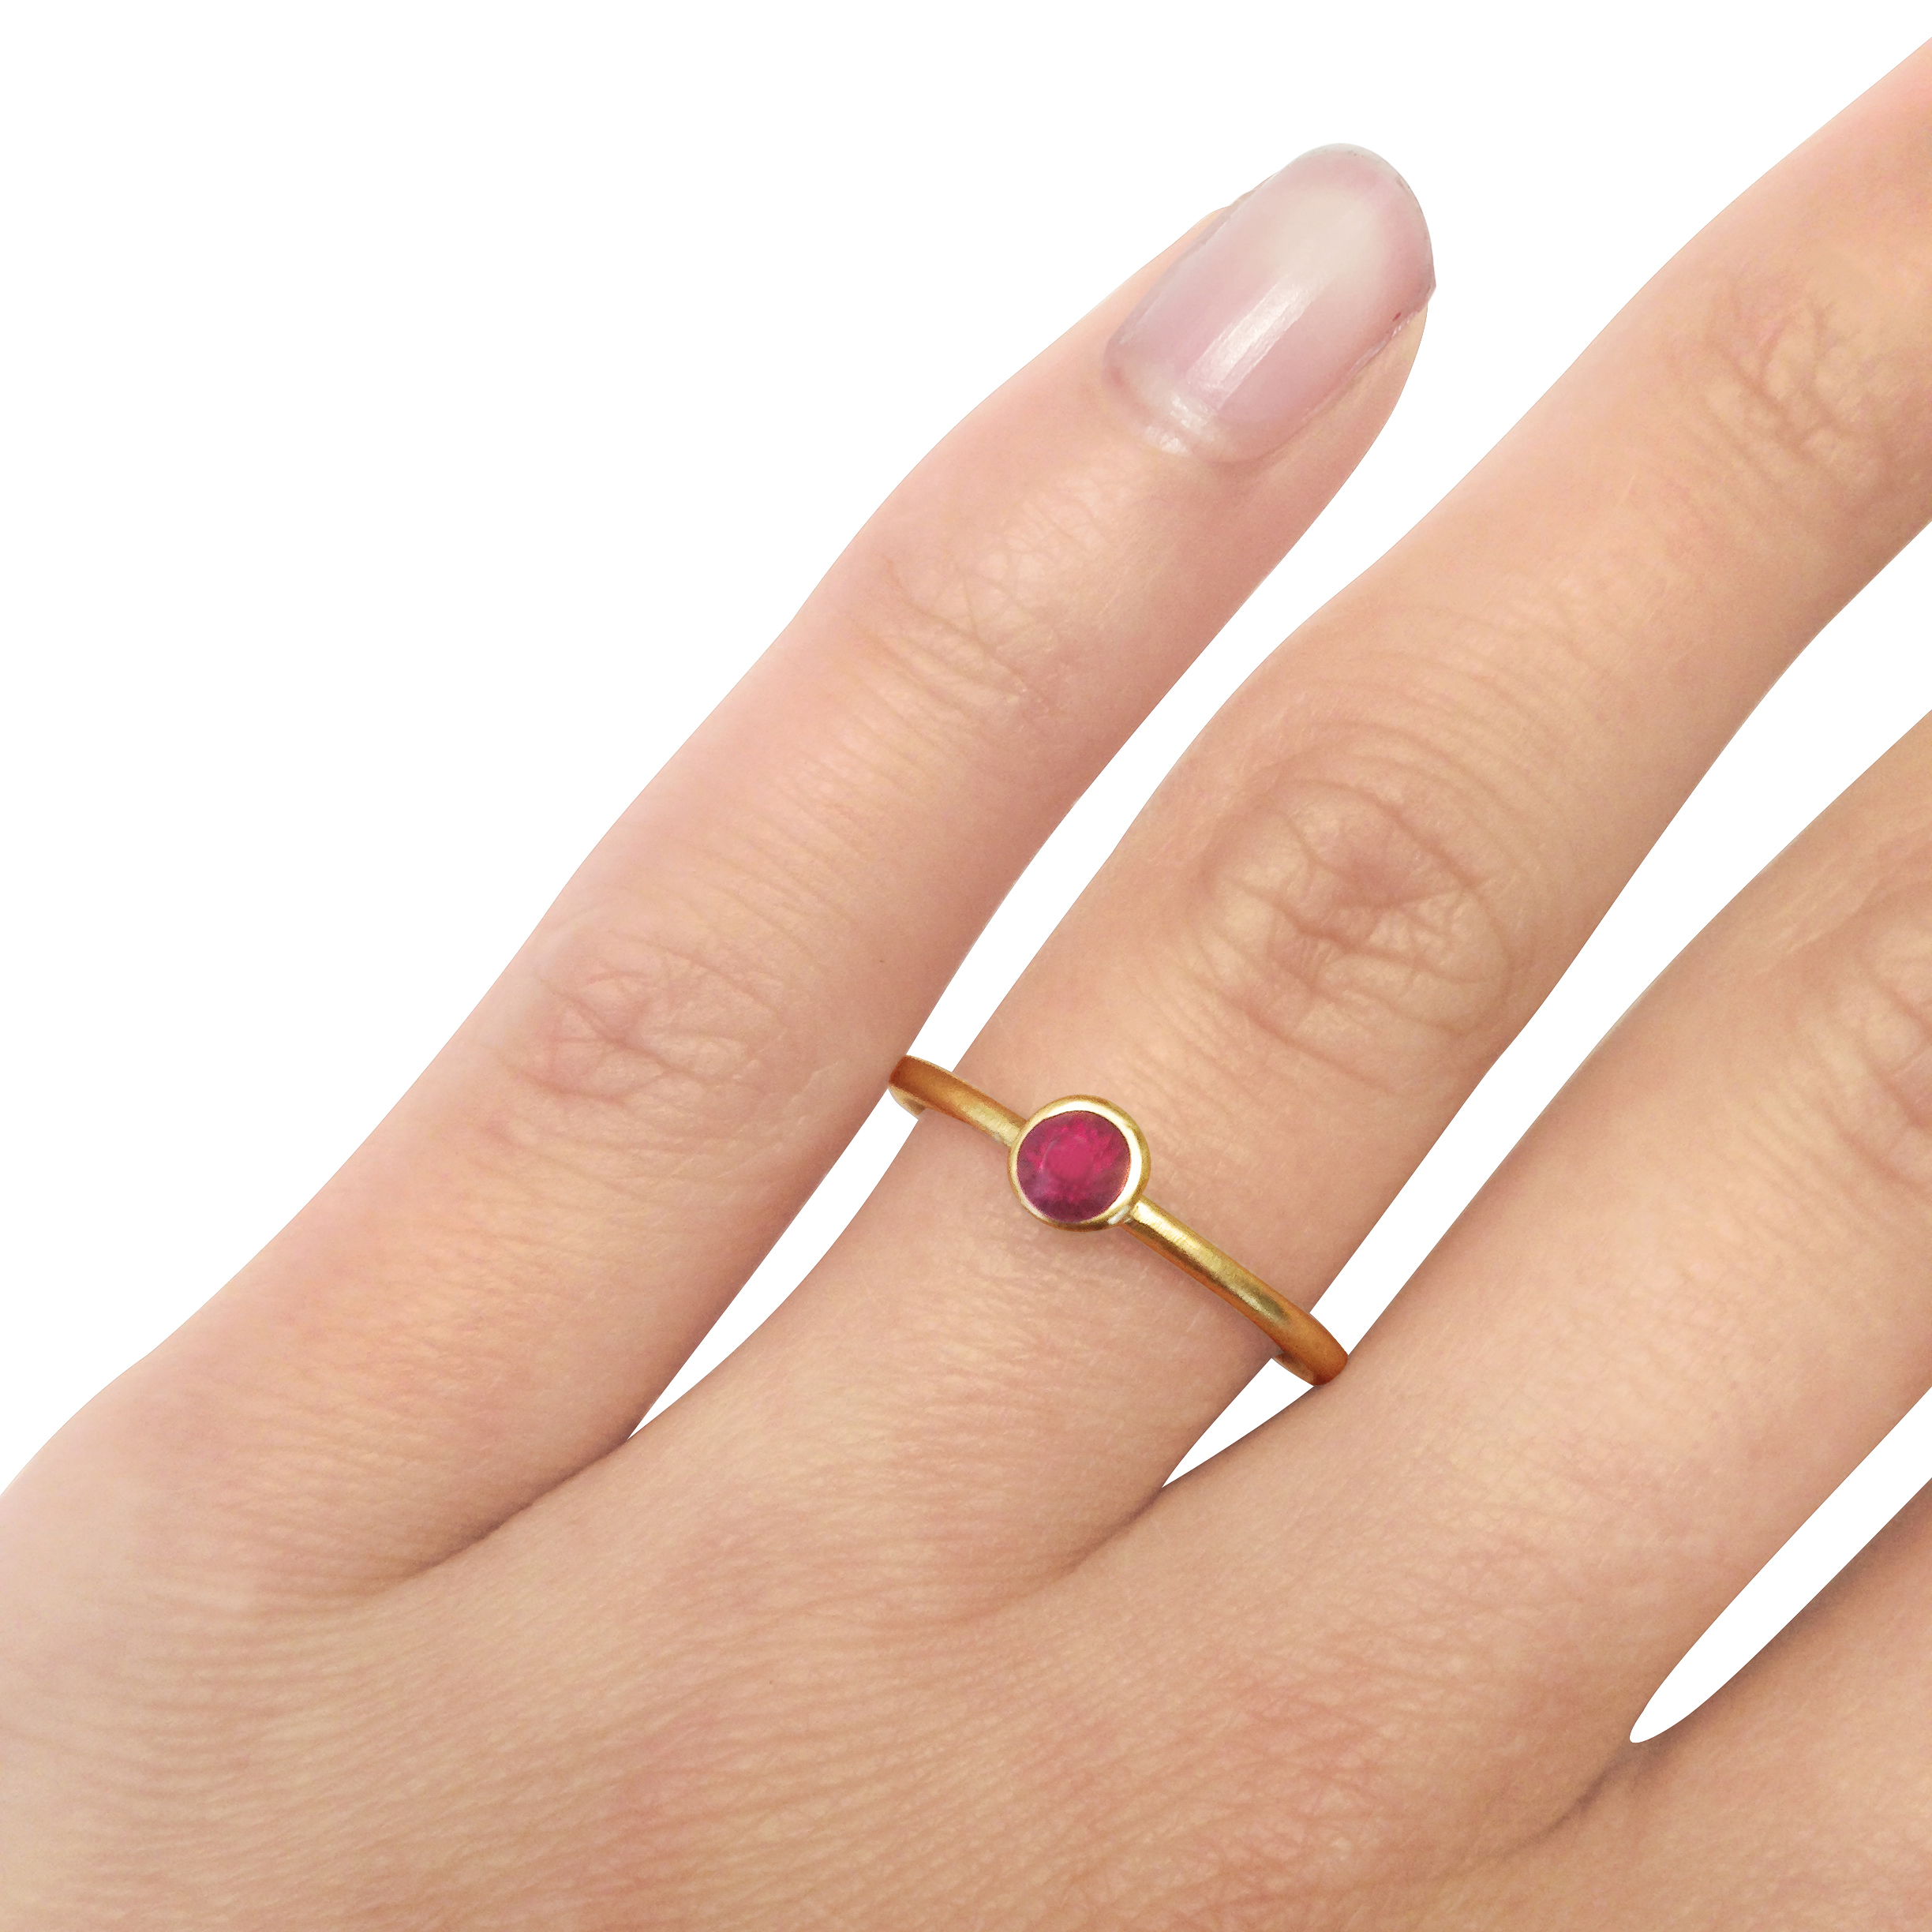 ruby-and-9-ct-gold-single-stone-stacking-ring-4.jpg